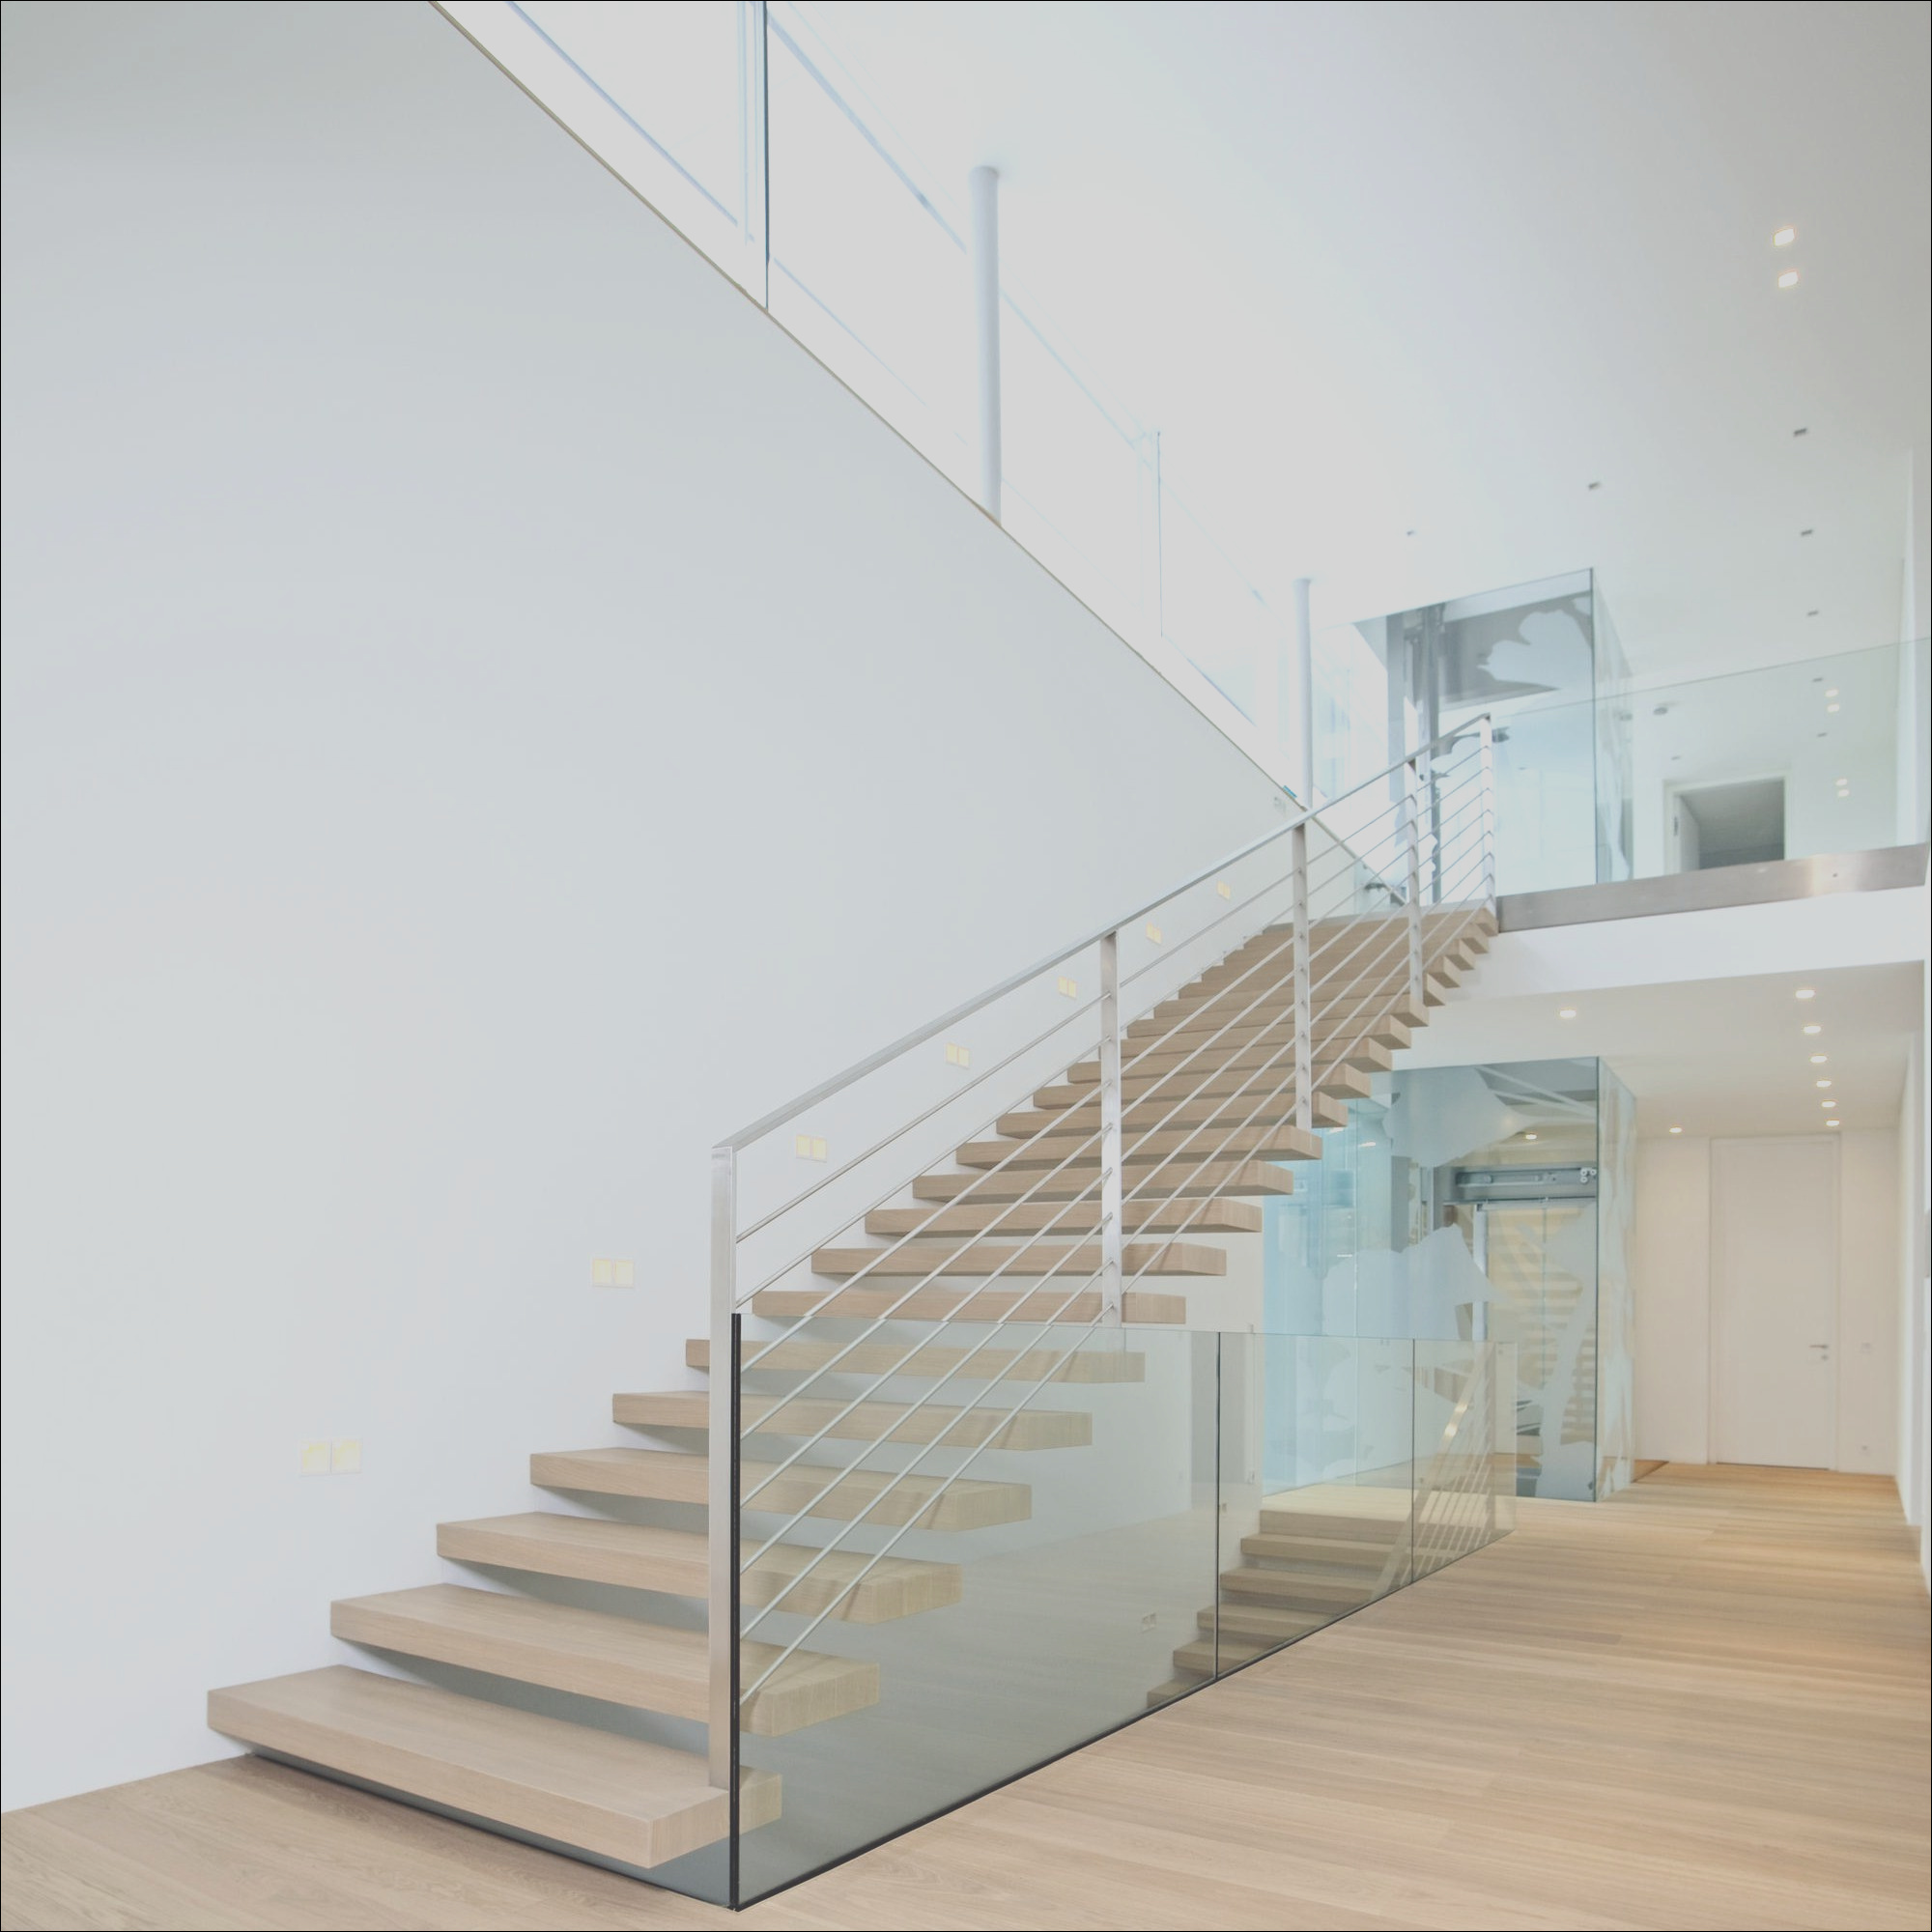 China 2019 New Design Modern Glass Stairs Glass Railing Staircase Build Wood Floating Staircase